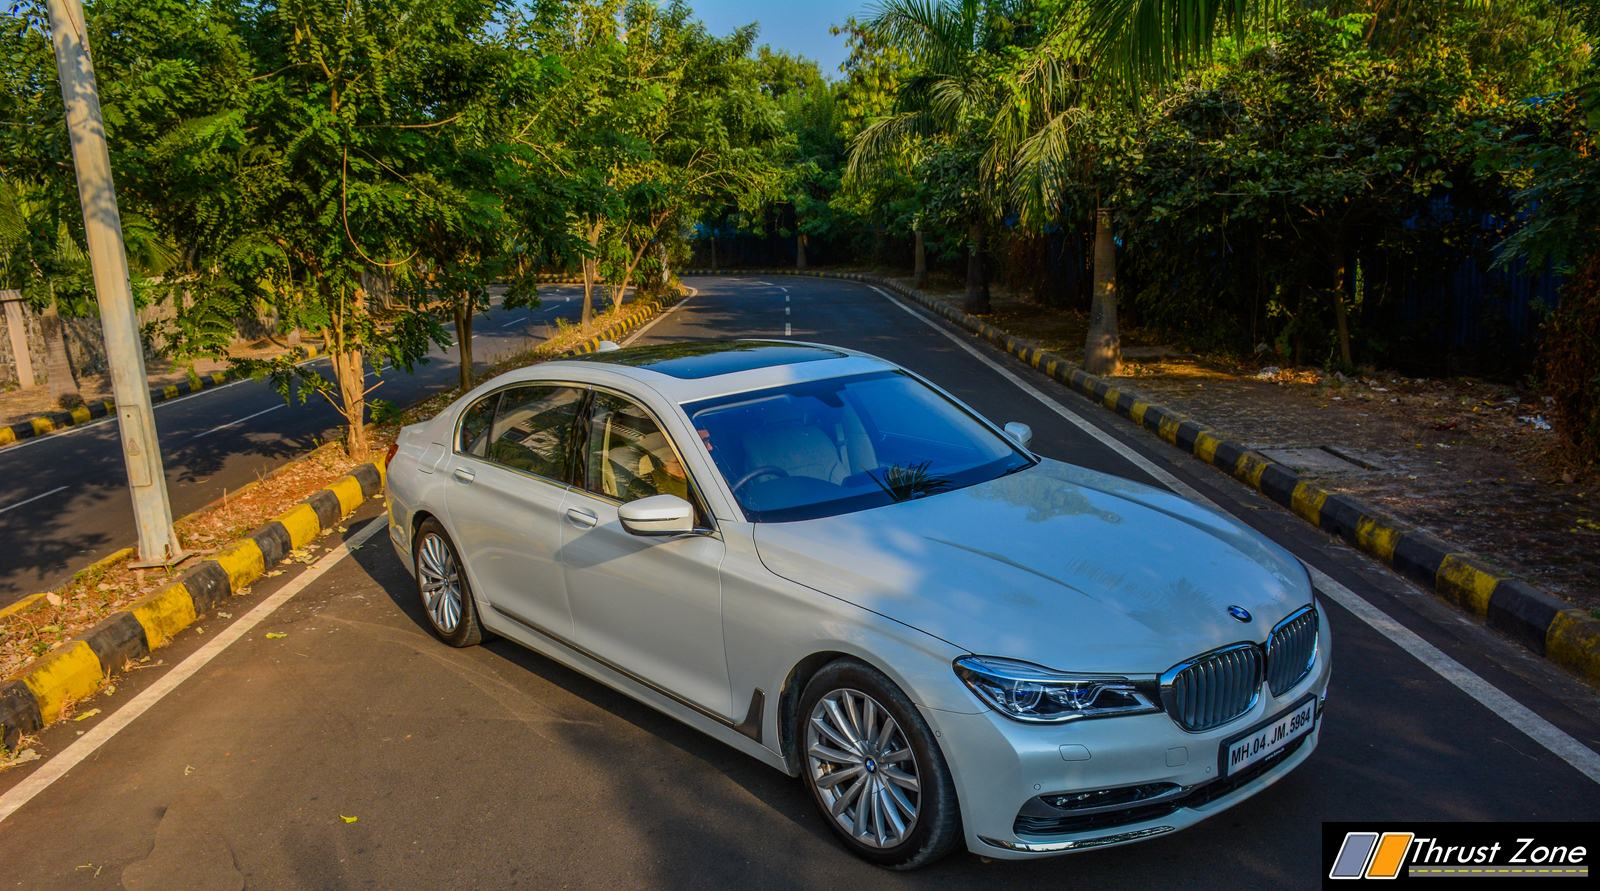 https://www.thrustzone.com/wp-content/uploads/2018/12/2018-BMW-7-SERIES-740i-INDIA-Review-14.jpg